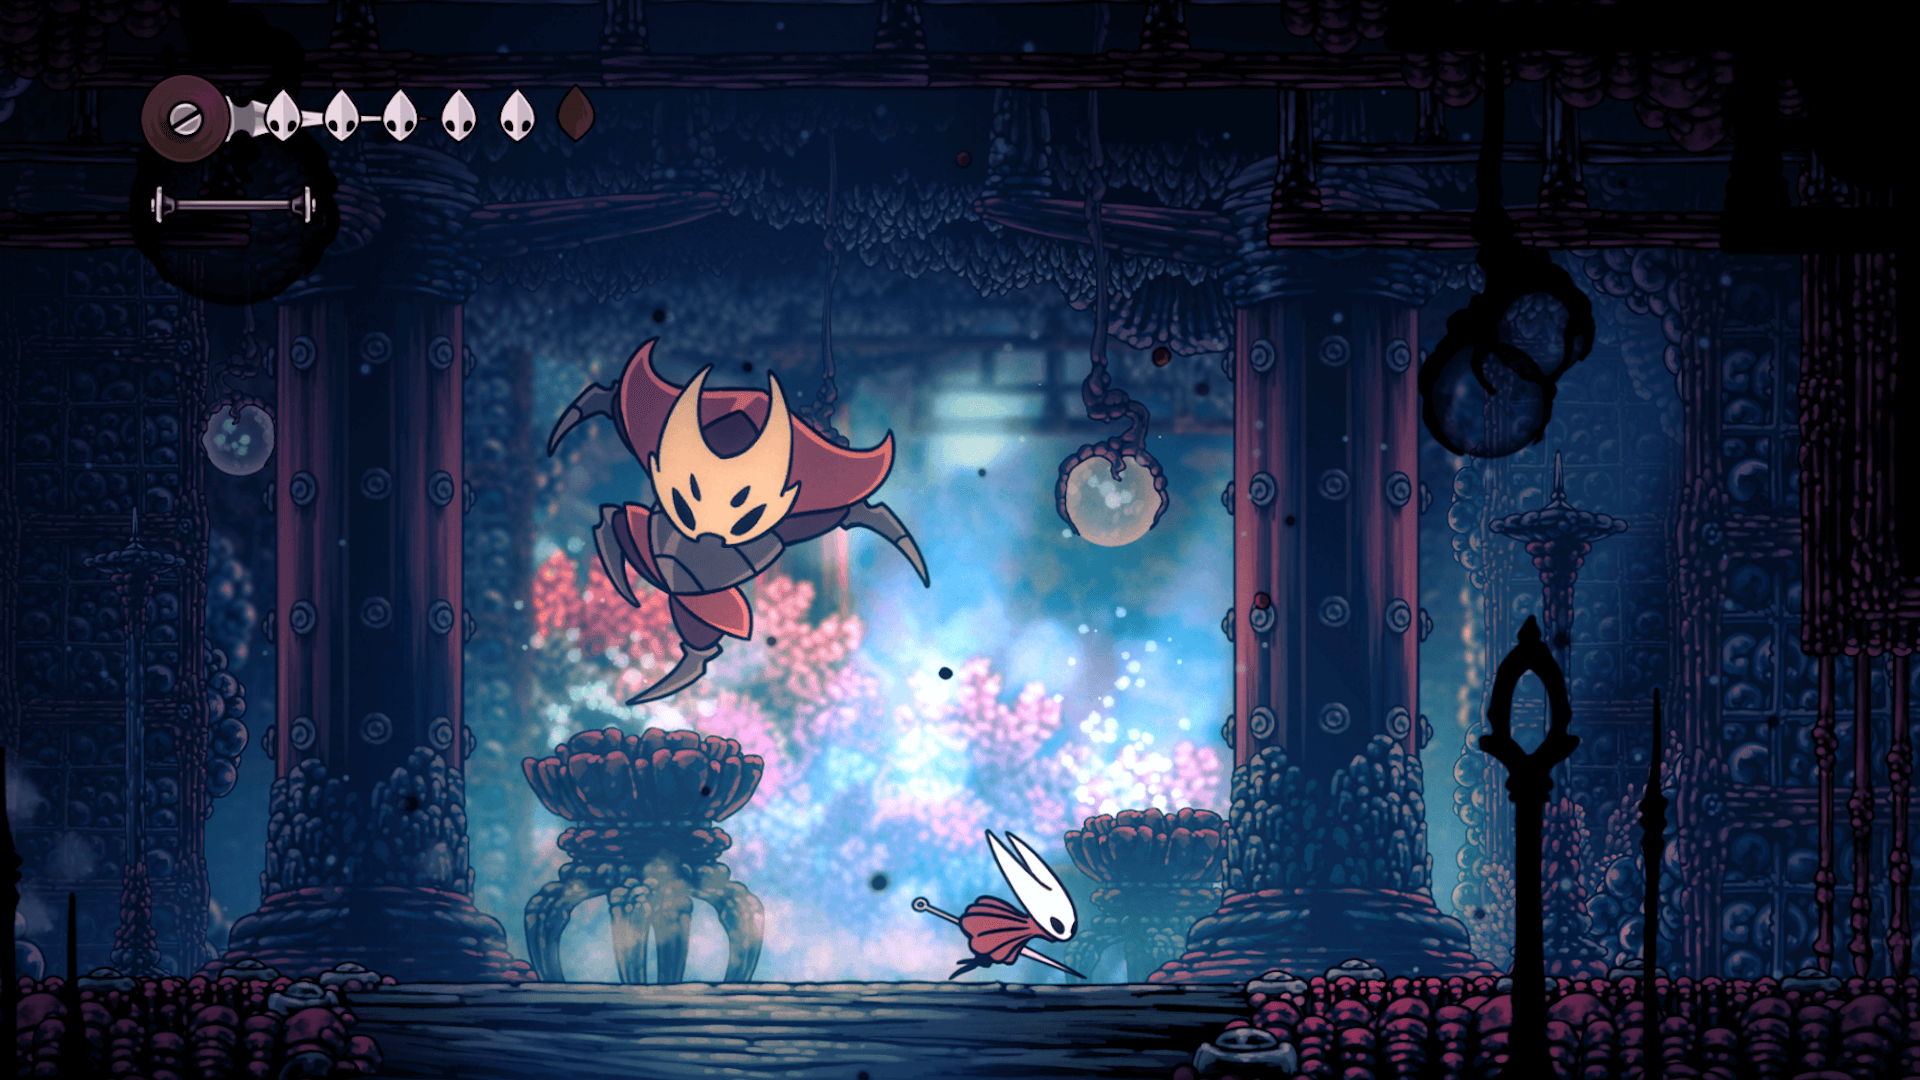 Hollow Knight: Silksong Will Not Be At E3, Team Cherry Confirms